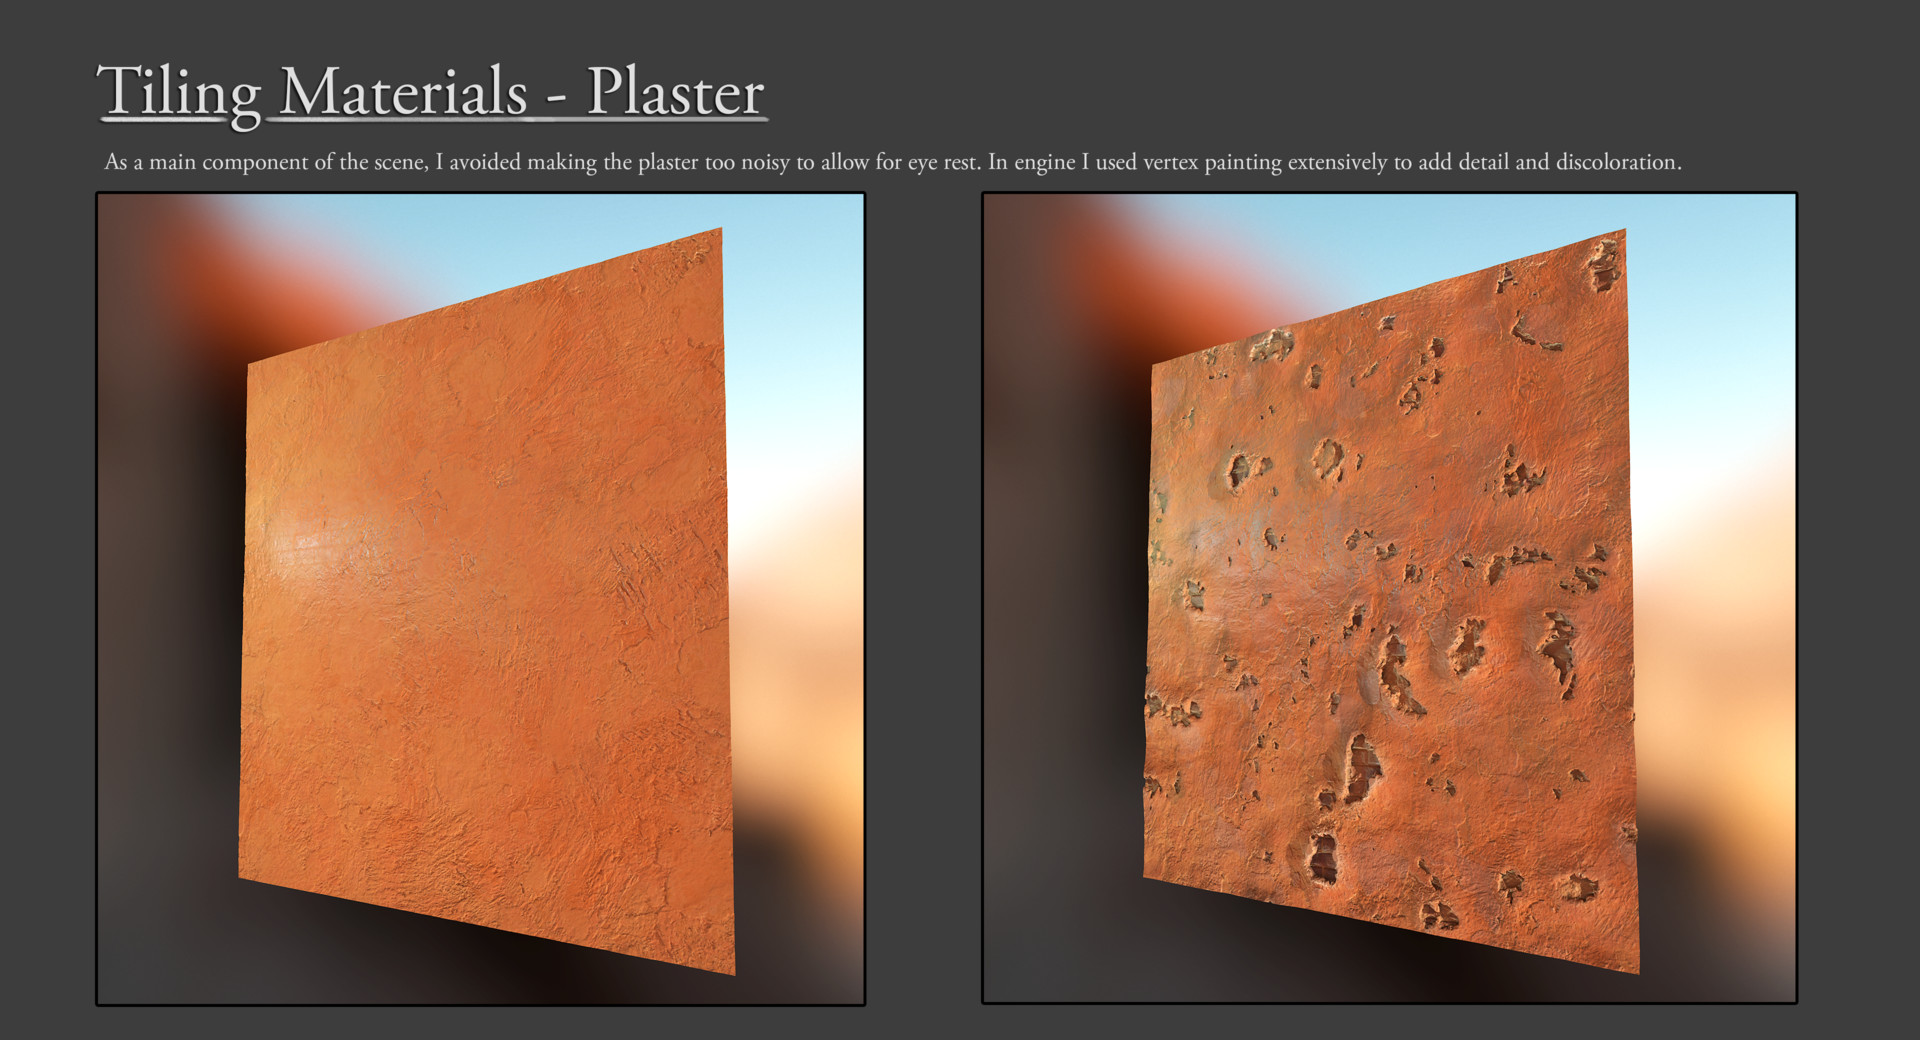 Olle norling tiling walls renders 2